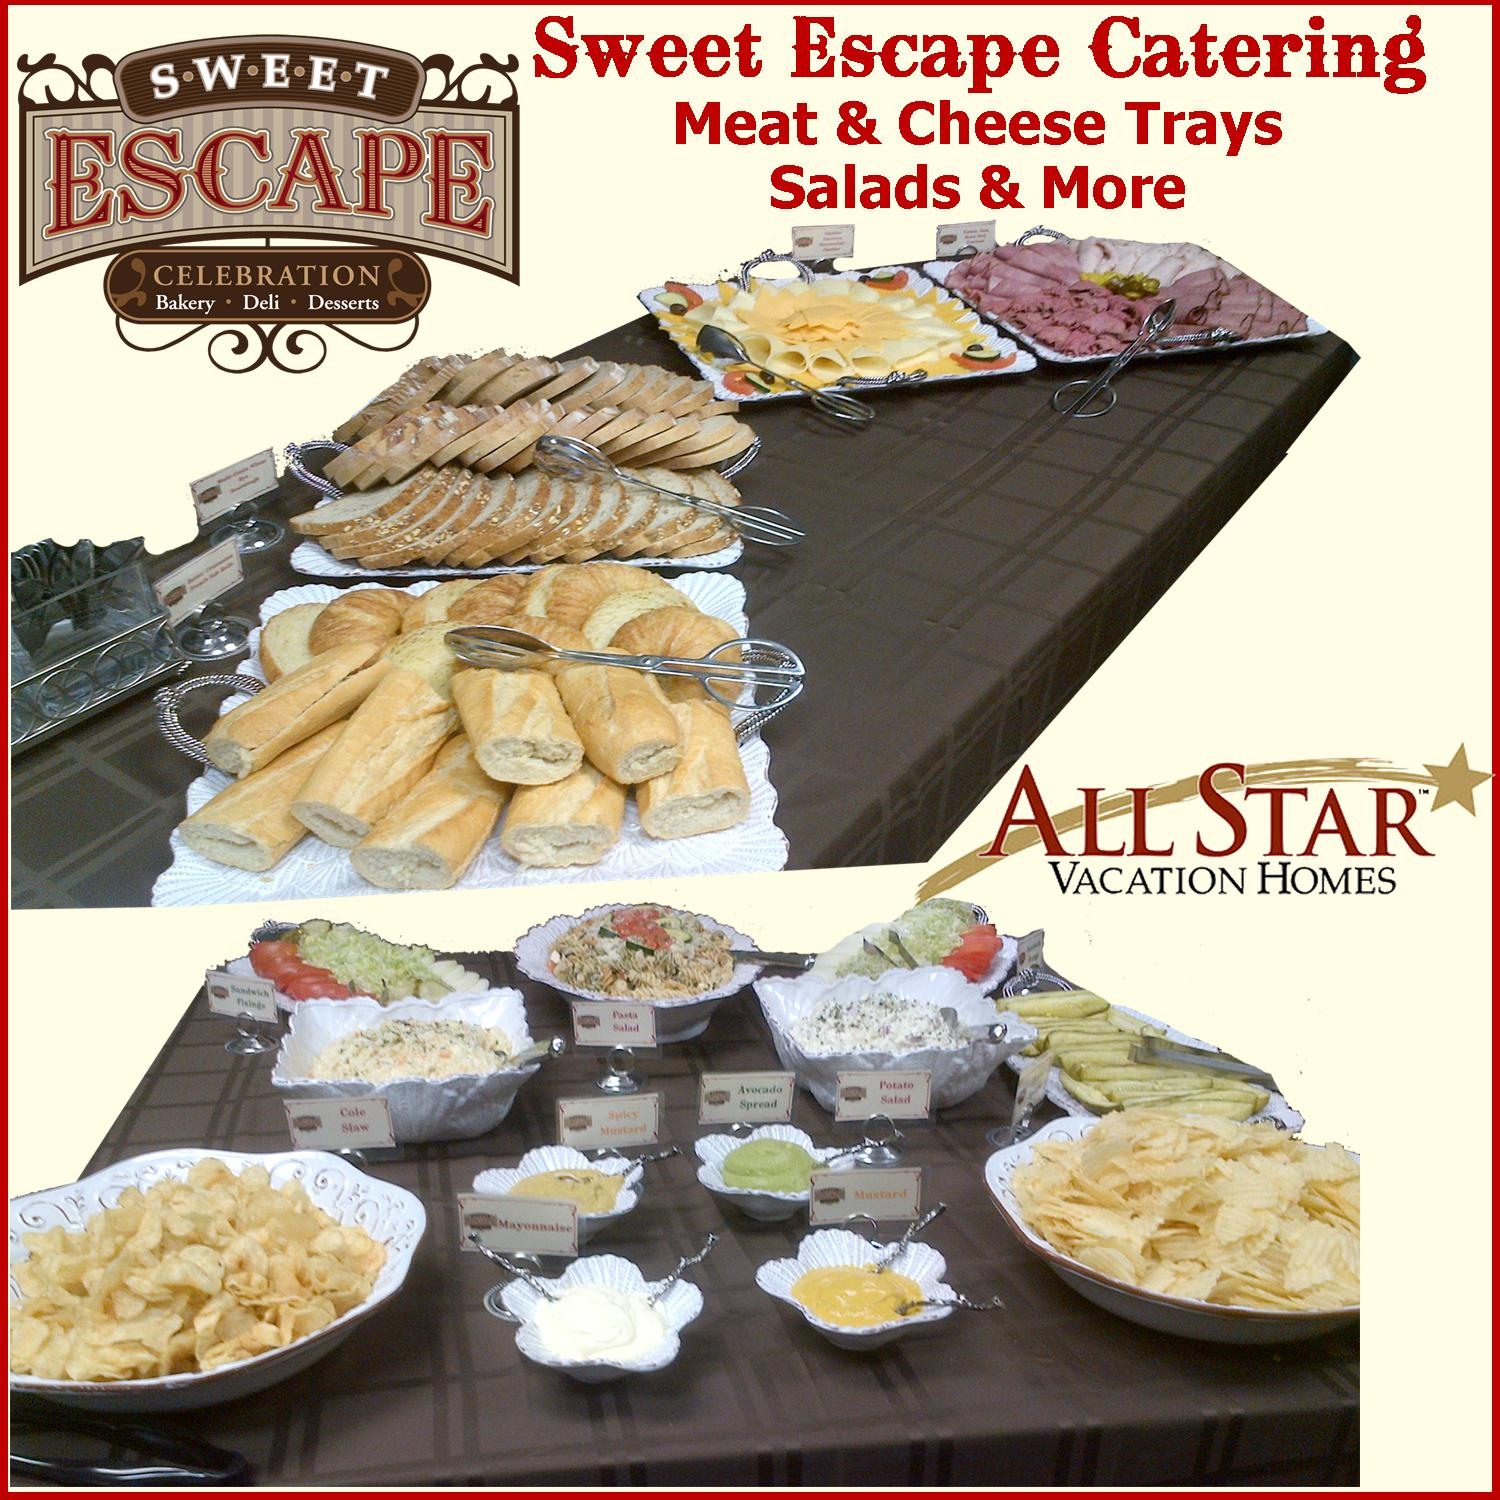 Sweet Escape Catering